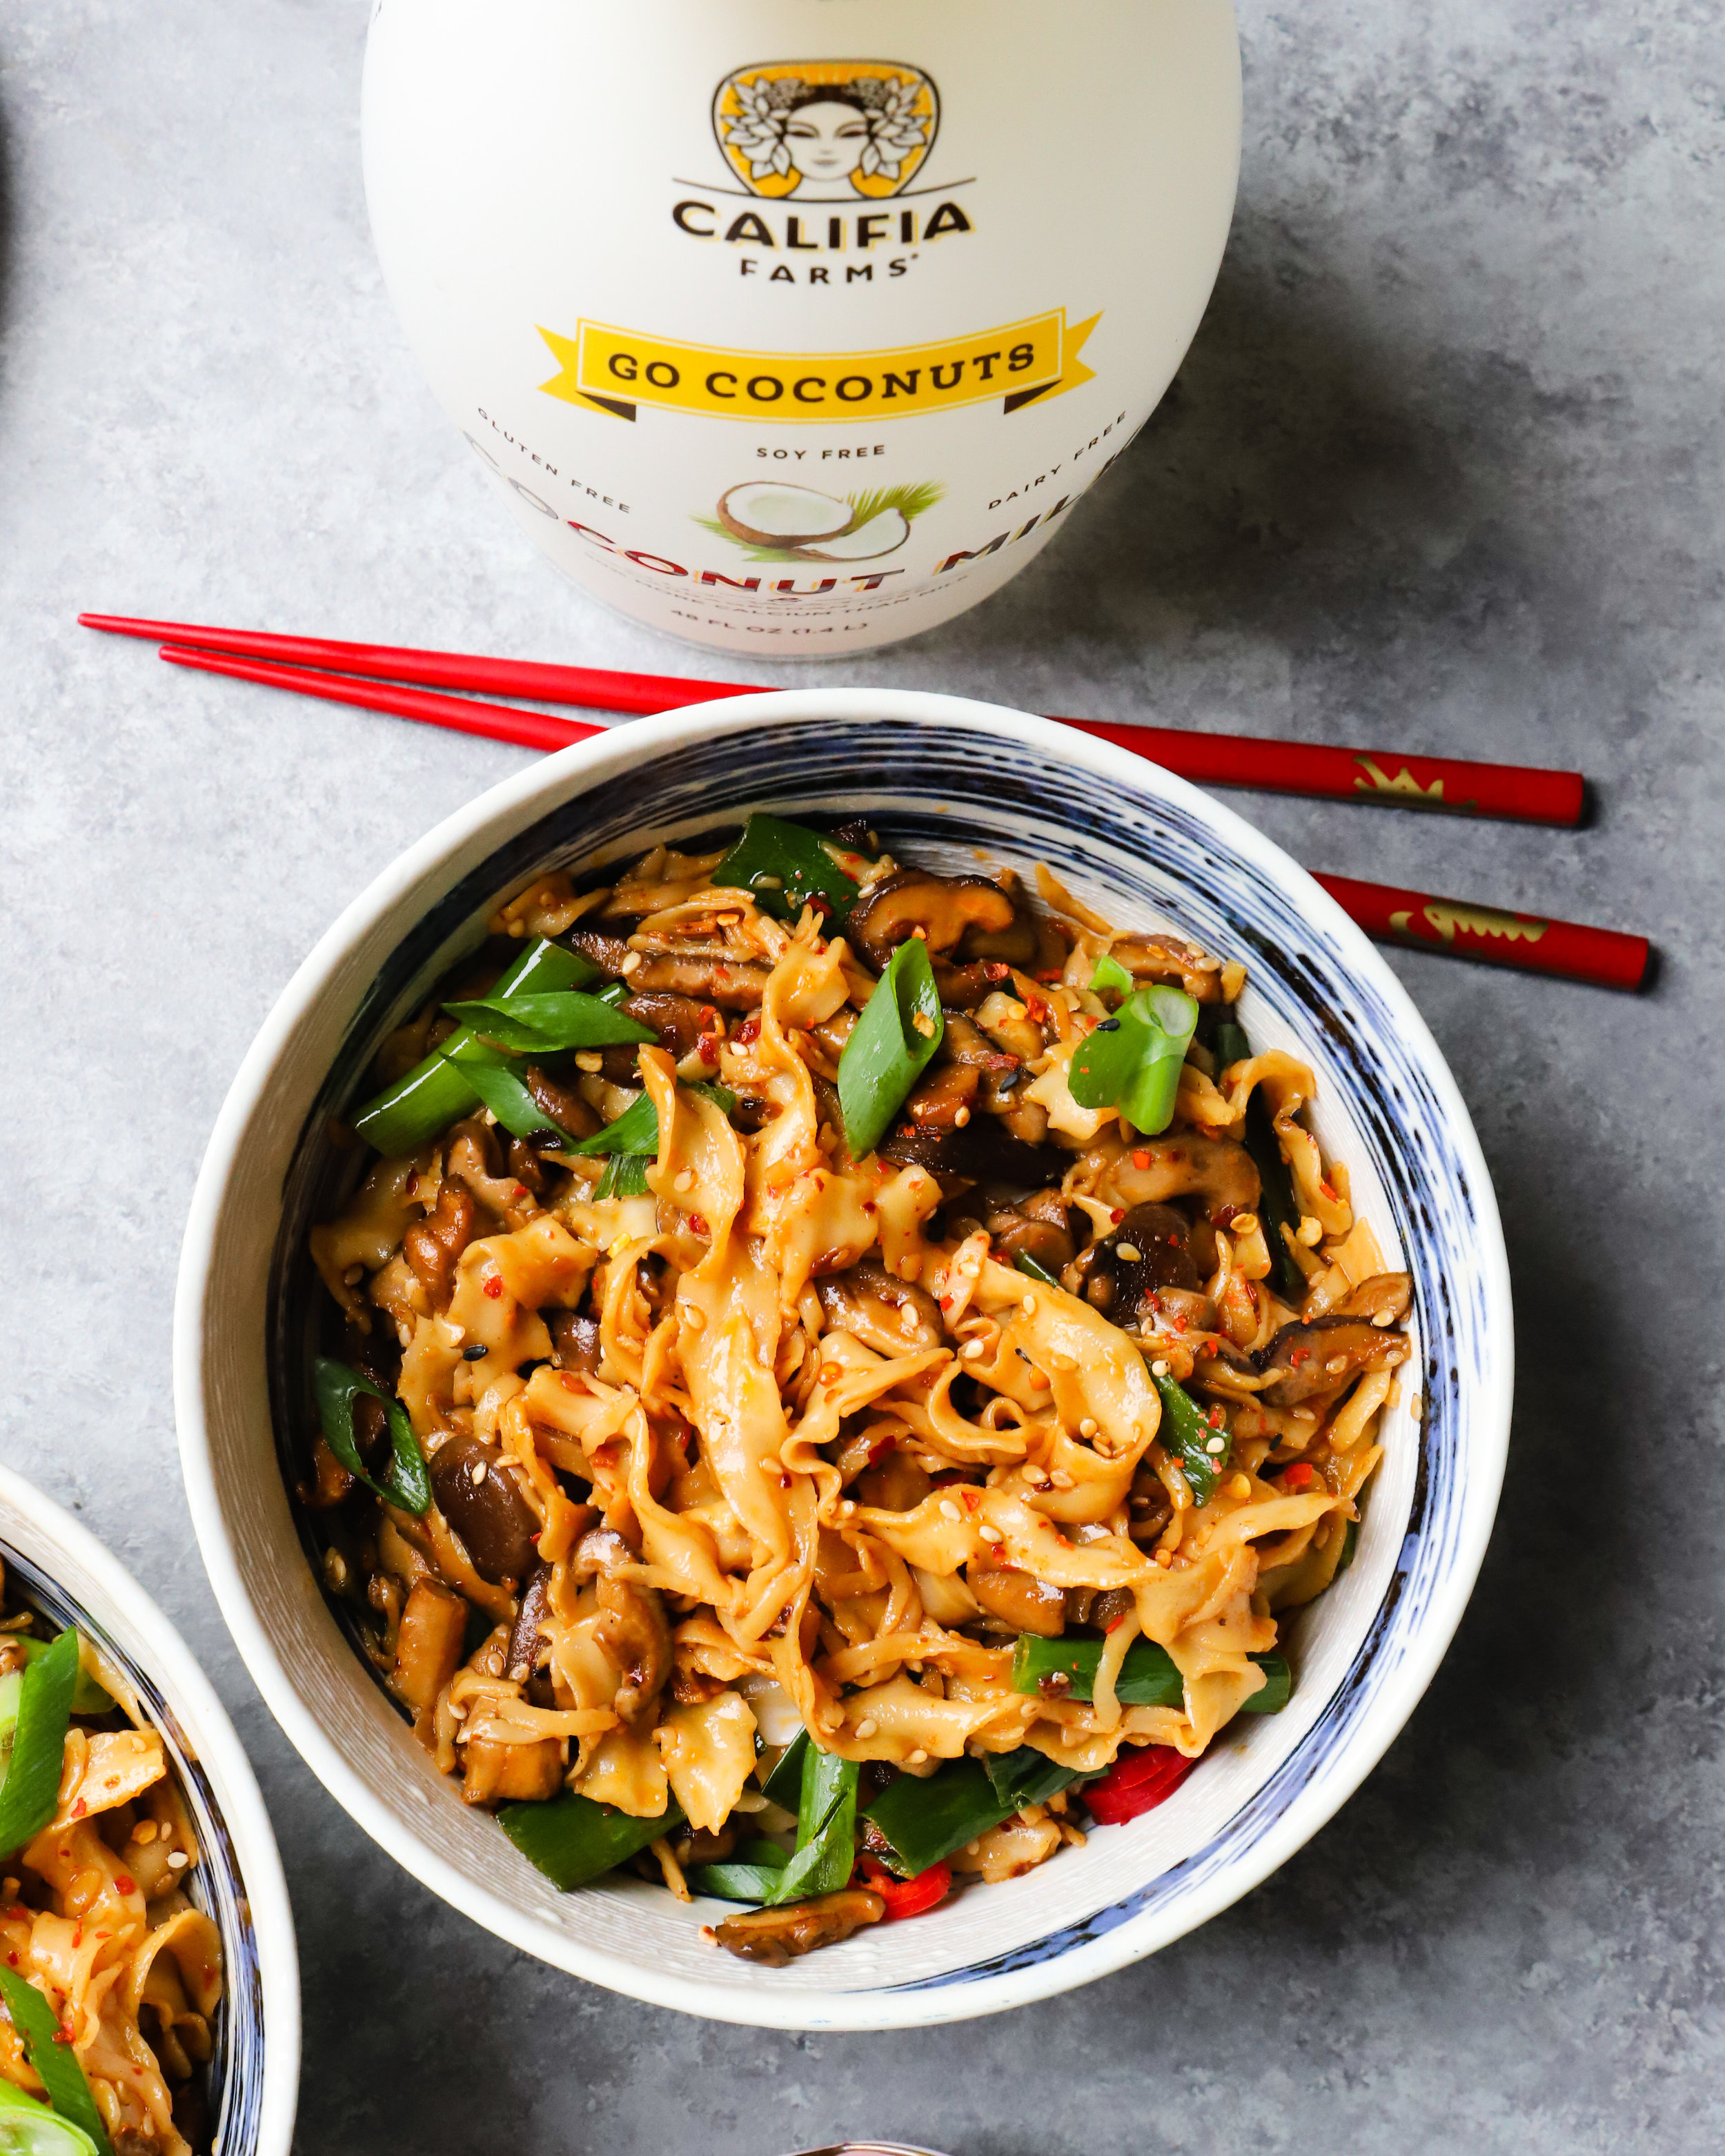 8 Ingredient Coconut Stir Fry Noodles